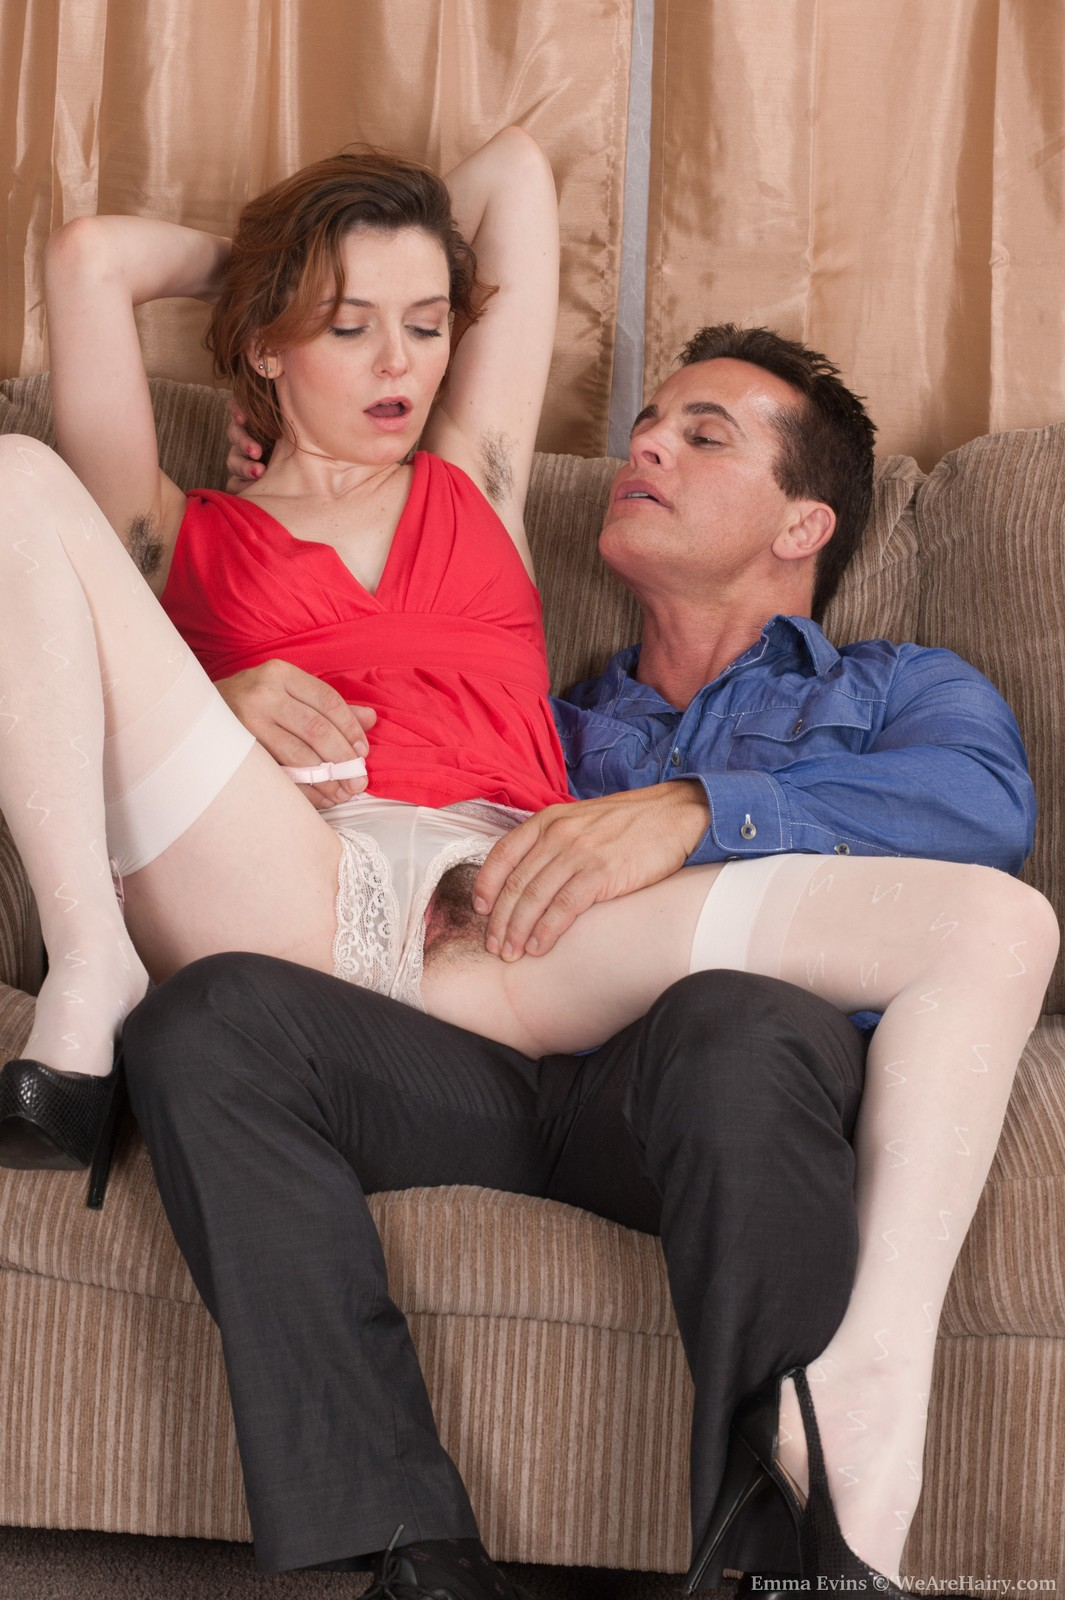 wpid-emma-evins-shares-hot-sex-with-her-horny-man2.jpg